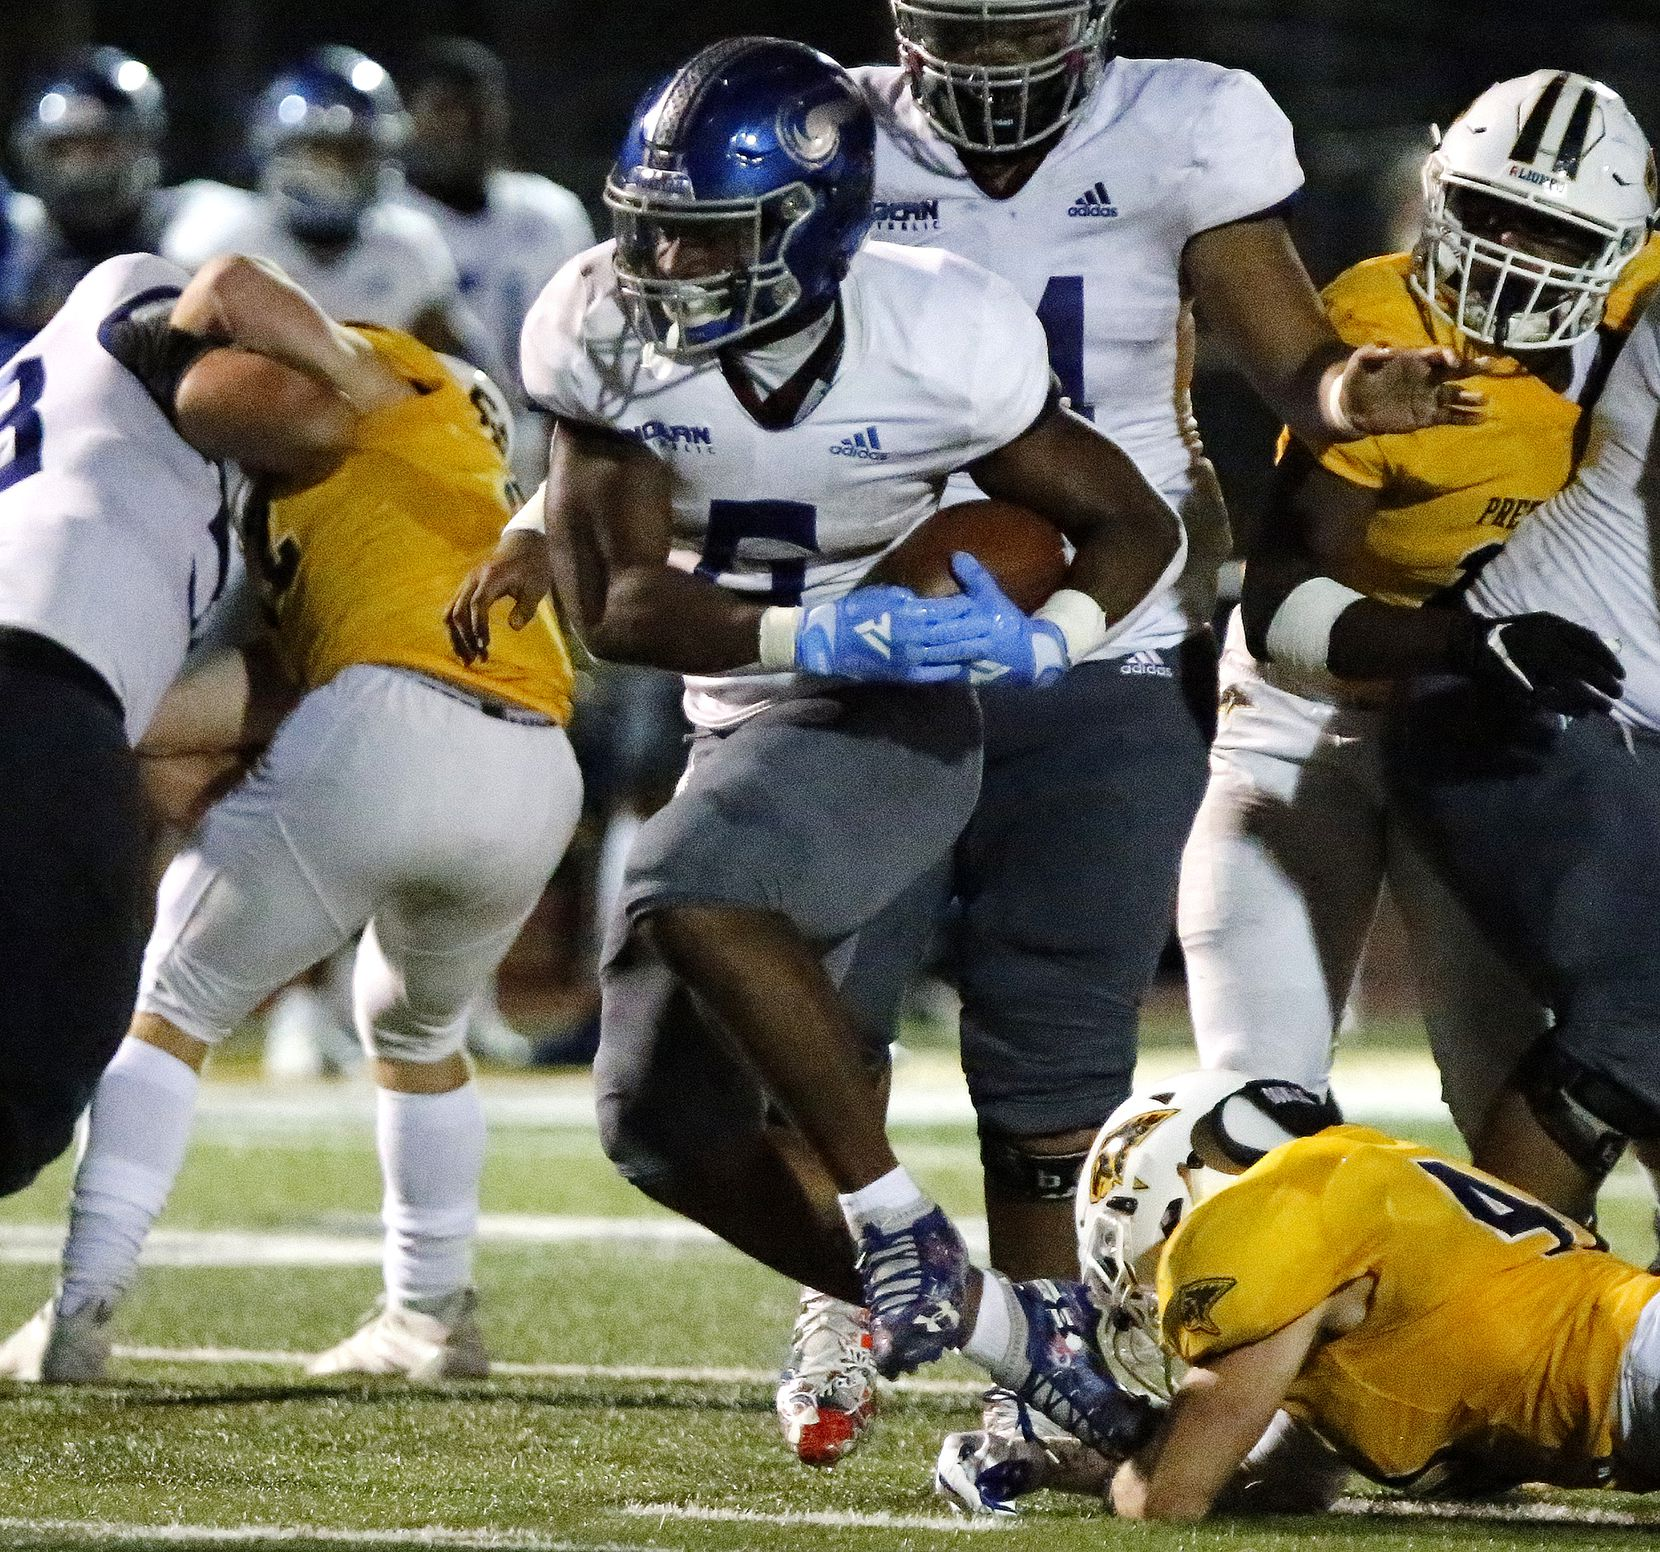 Nolan Catholic High School running back Emeka Megwa (6) scored a touchdown on this run after breaking a tackle attempt by Prestonwood Christian Academy linebacker Cole Rumsey (40) during the fourth quarter as Prestonwood Christian Academy hosted Nolan Catholic High School at Lions Stadium in Plano on Friday night, October 9, 2020. (Stewart F. House/Special Contributor)